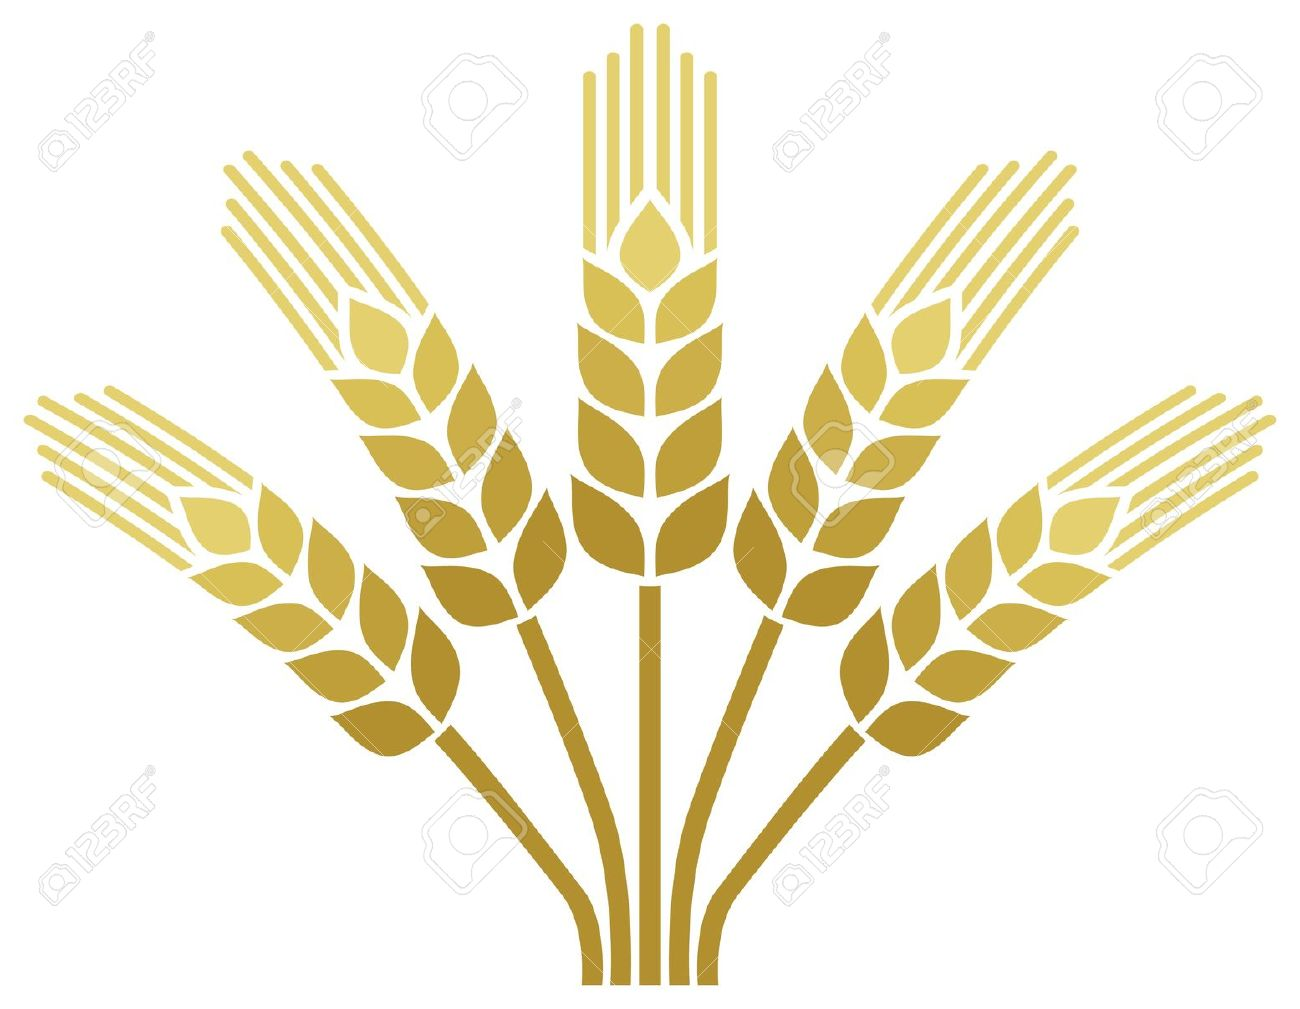 Wheat ear clipart #17